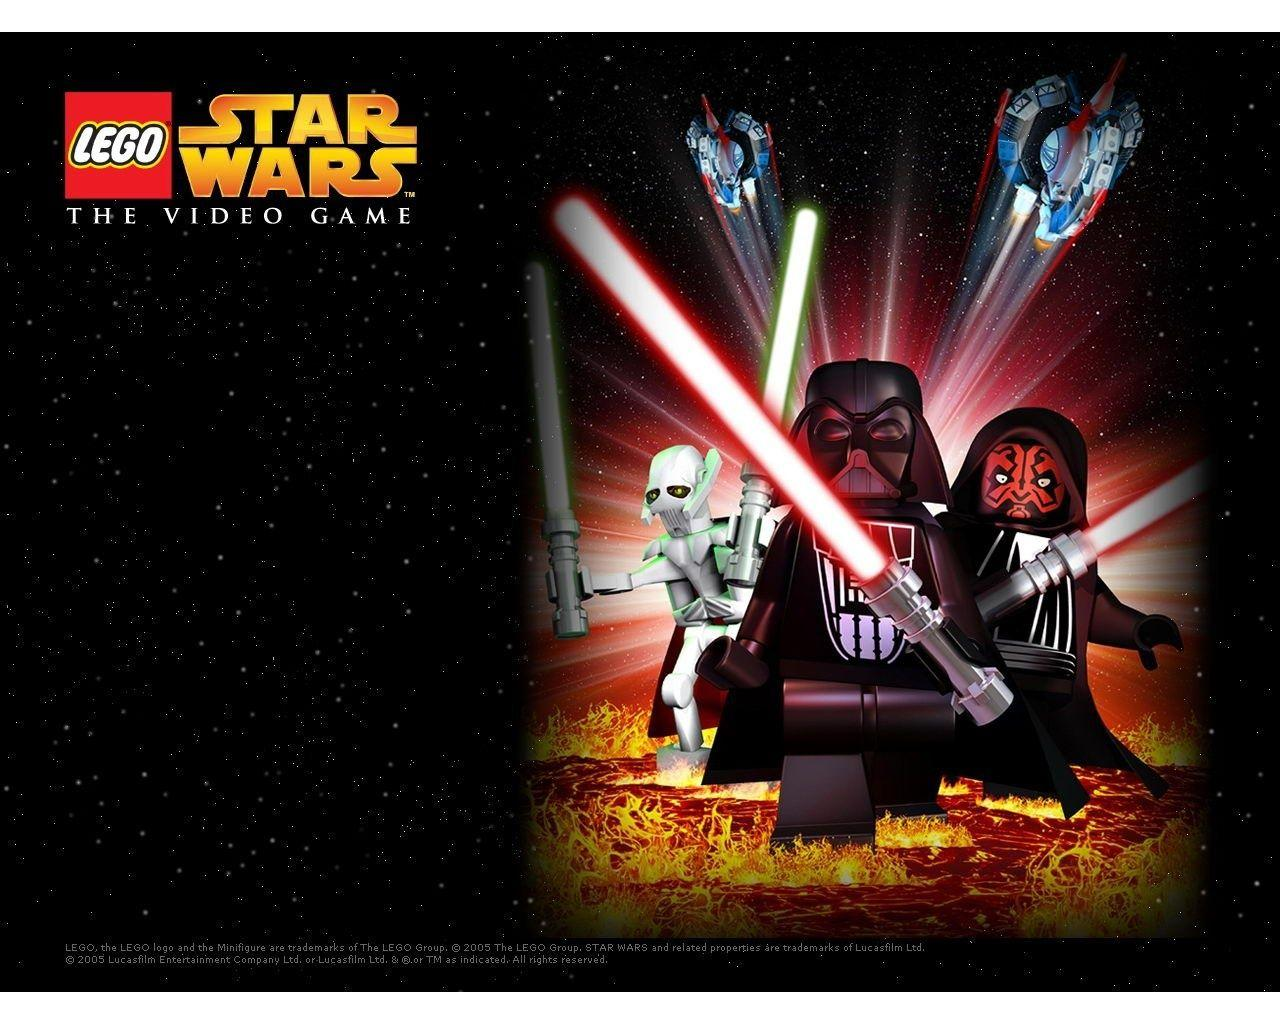 Lego Star Wars Wallpapers - Wallpaper Cave